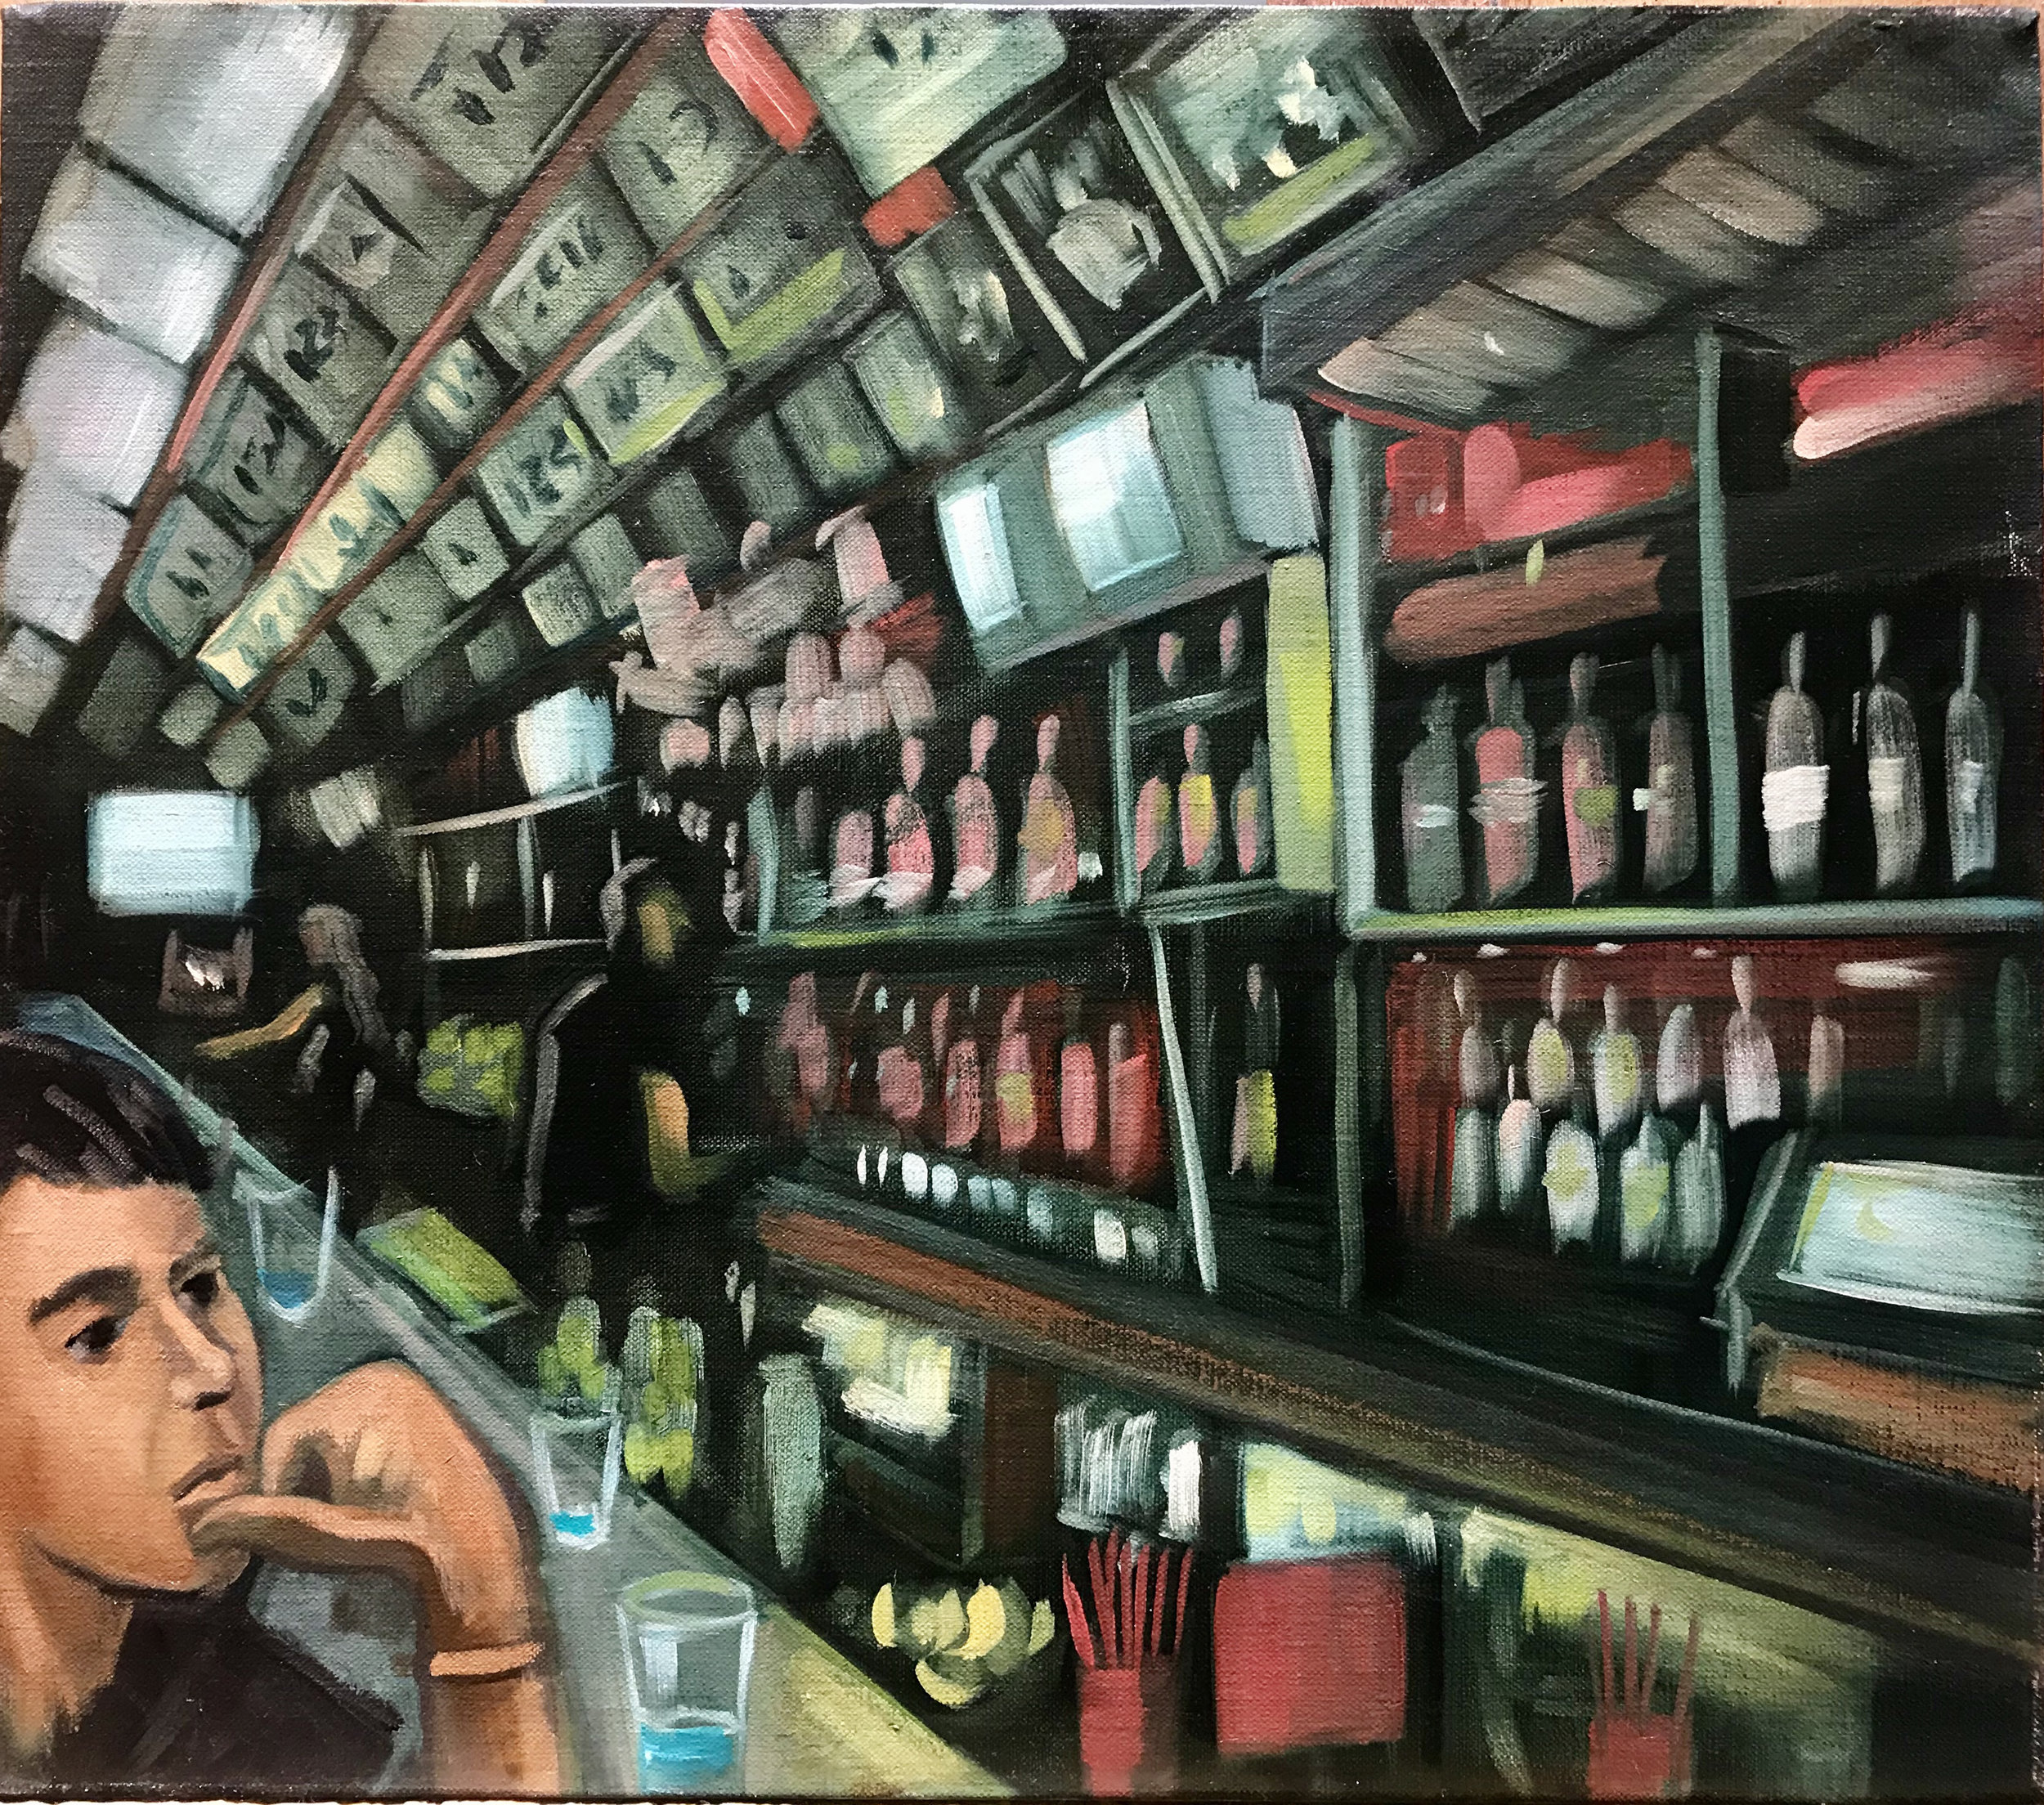 Raul Guerrero  Barney's Beanery: West Hollywood c. 1996, 2013  Oil on linen Framed Dimensions: 16 x 18 inches (40.6 x 45.7 centimeters)